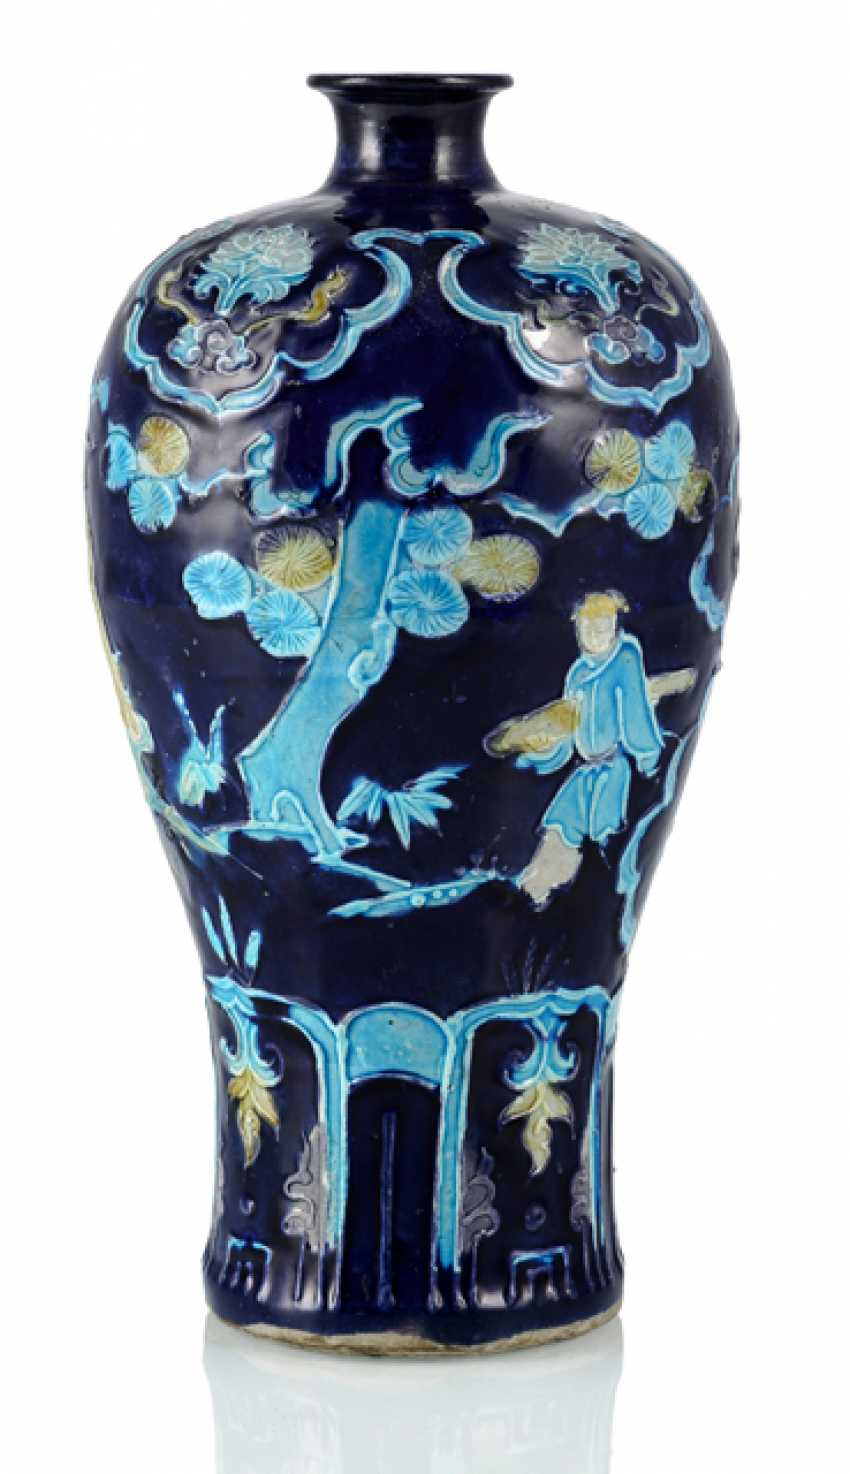 'Fahua'-Vase in meiping Form with decoration of a sage - photo 1